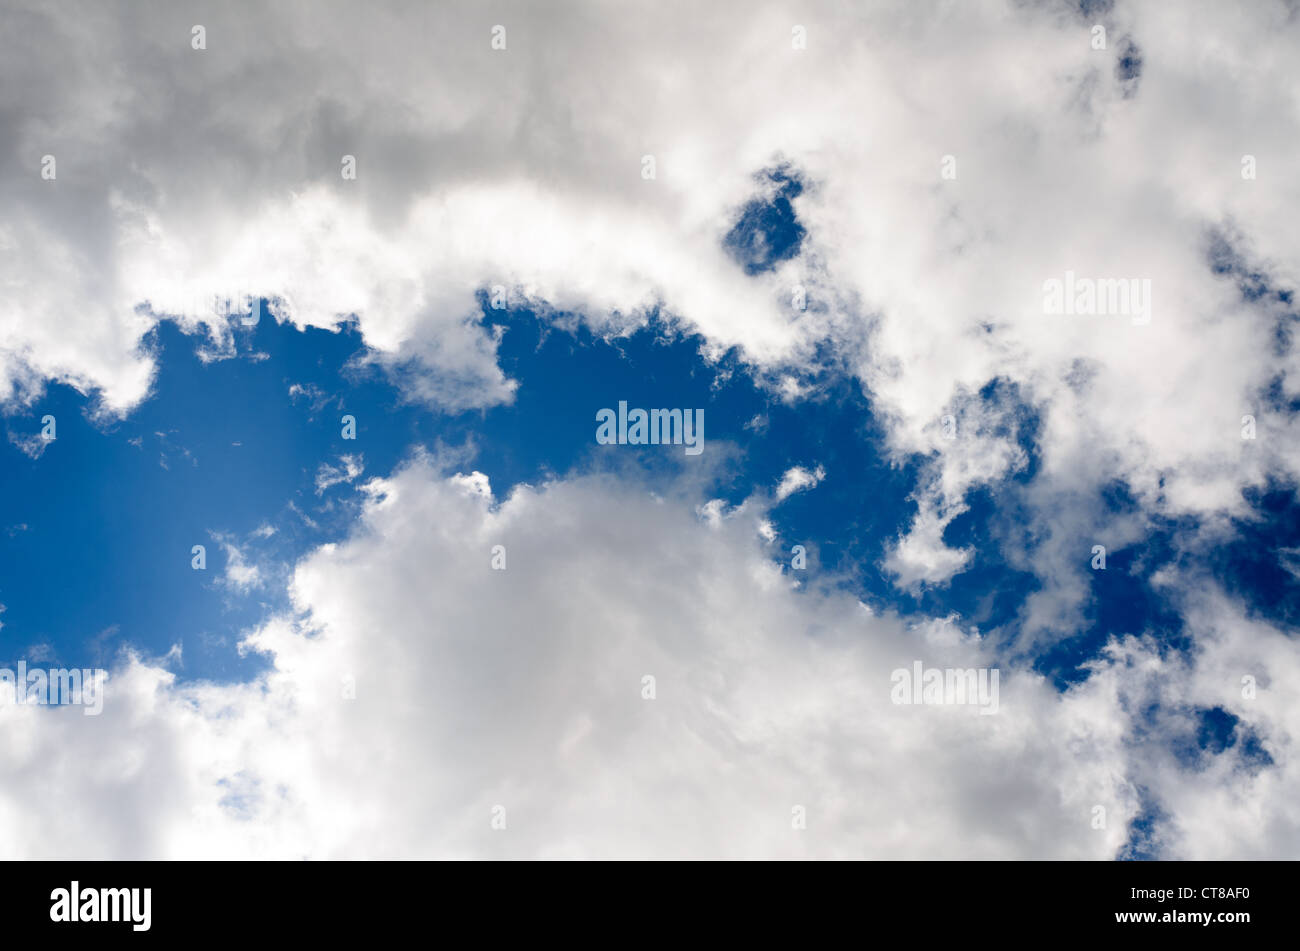 Fluffy clouds in a blue sky sky - Stock Image